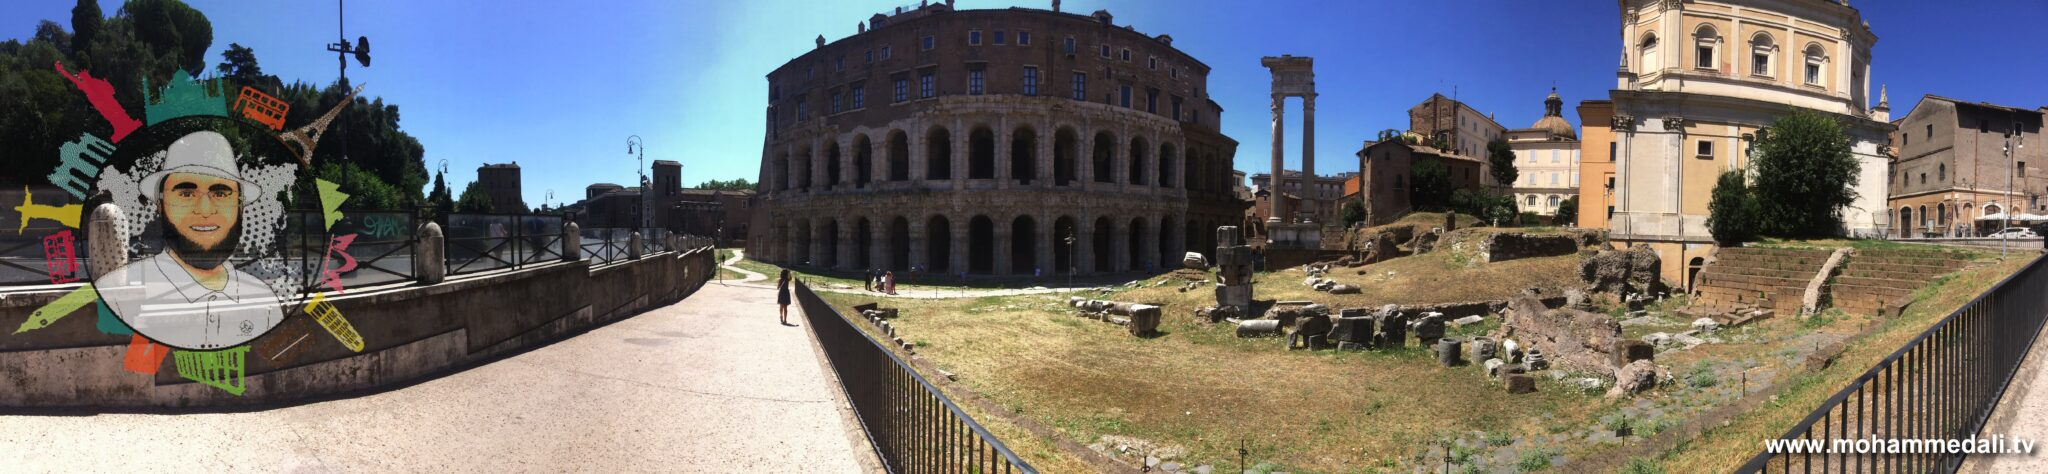 Theatre of Marcellus | Visit Rome in 3 Days | Italy Tour with Mohammed Ali